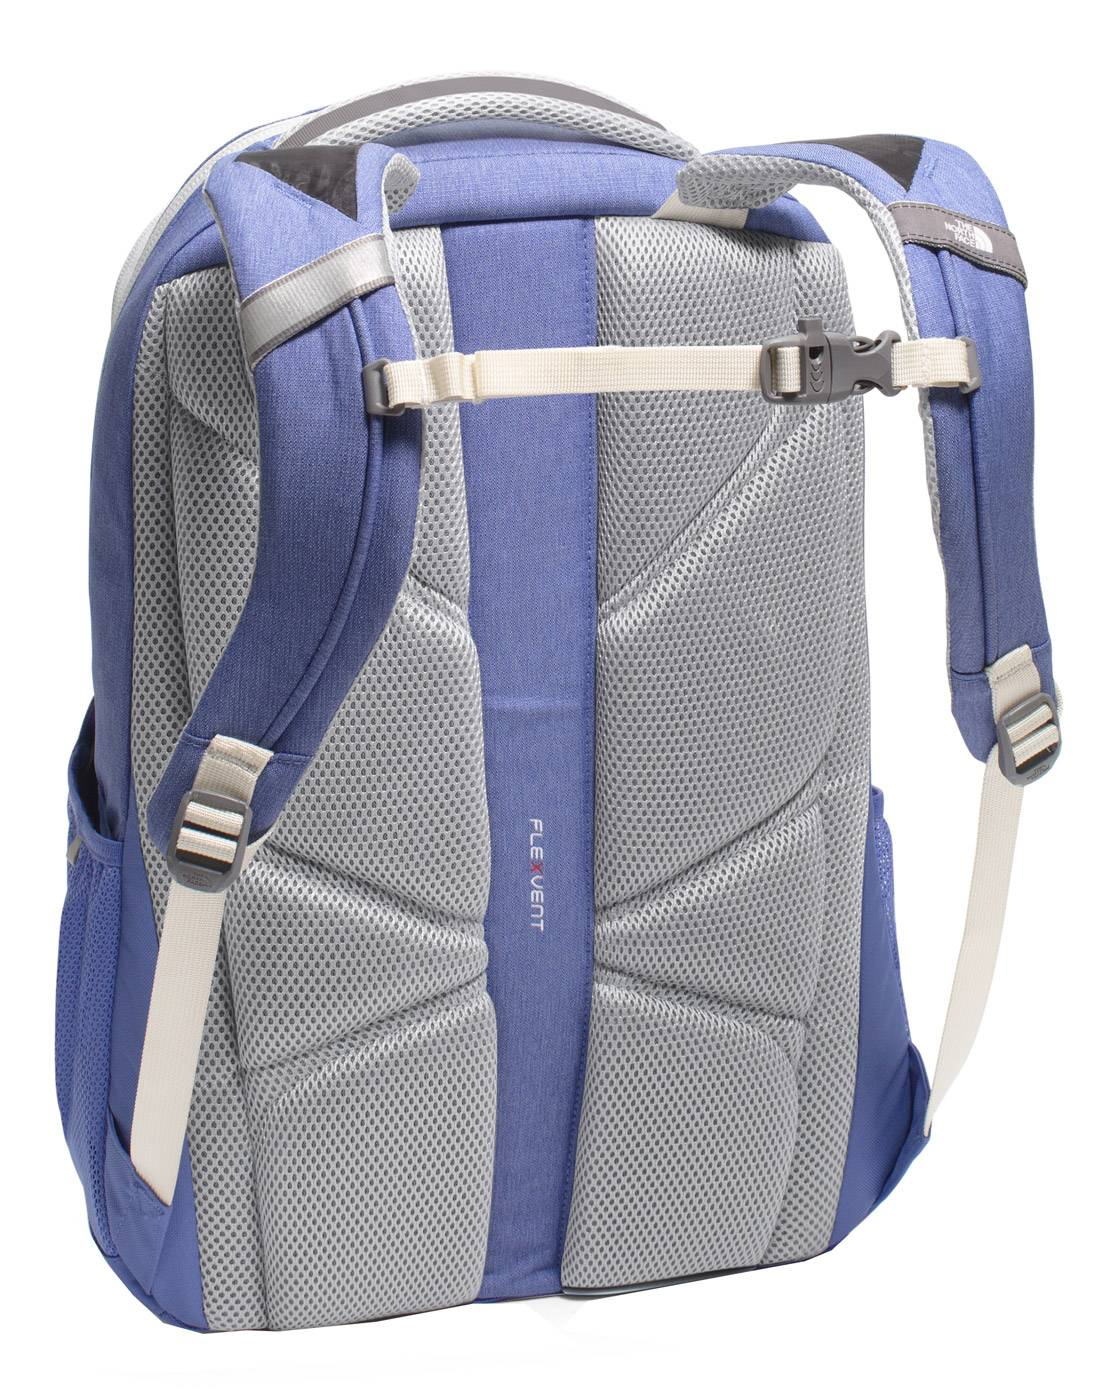 Excellent The North Face Womenu0026#39;s Isabella Backpack - At Moosejaw.com